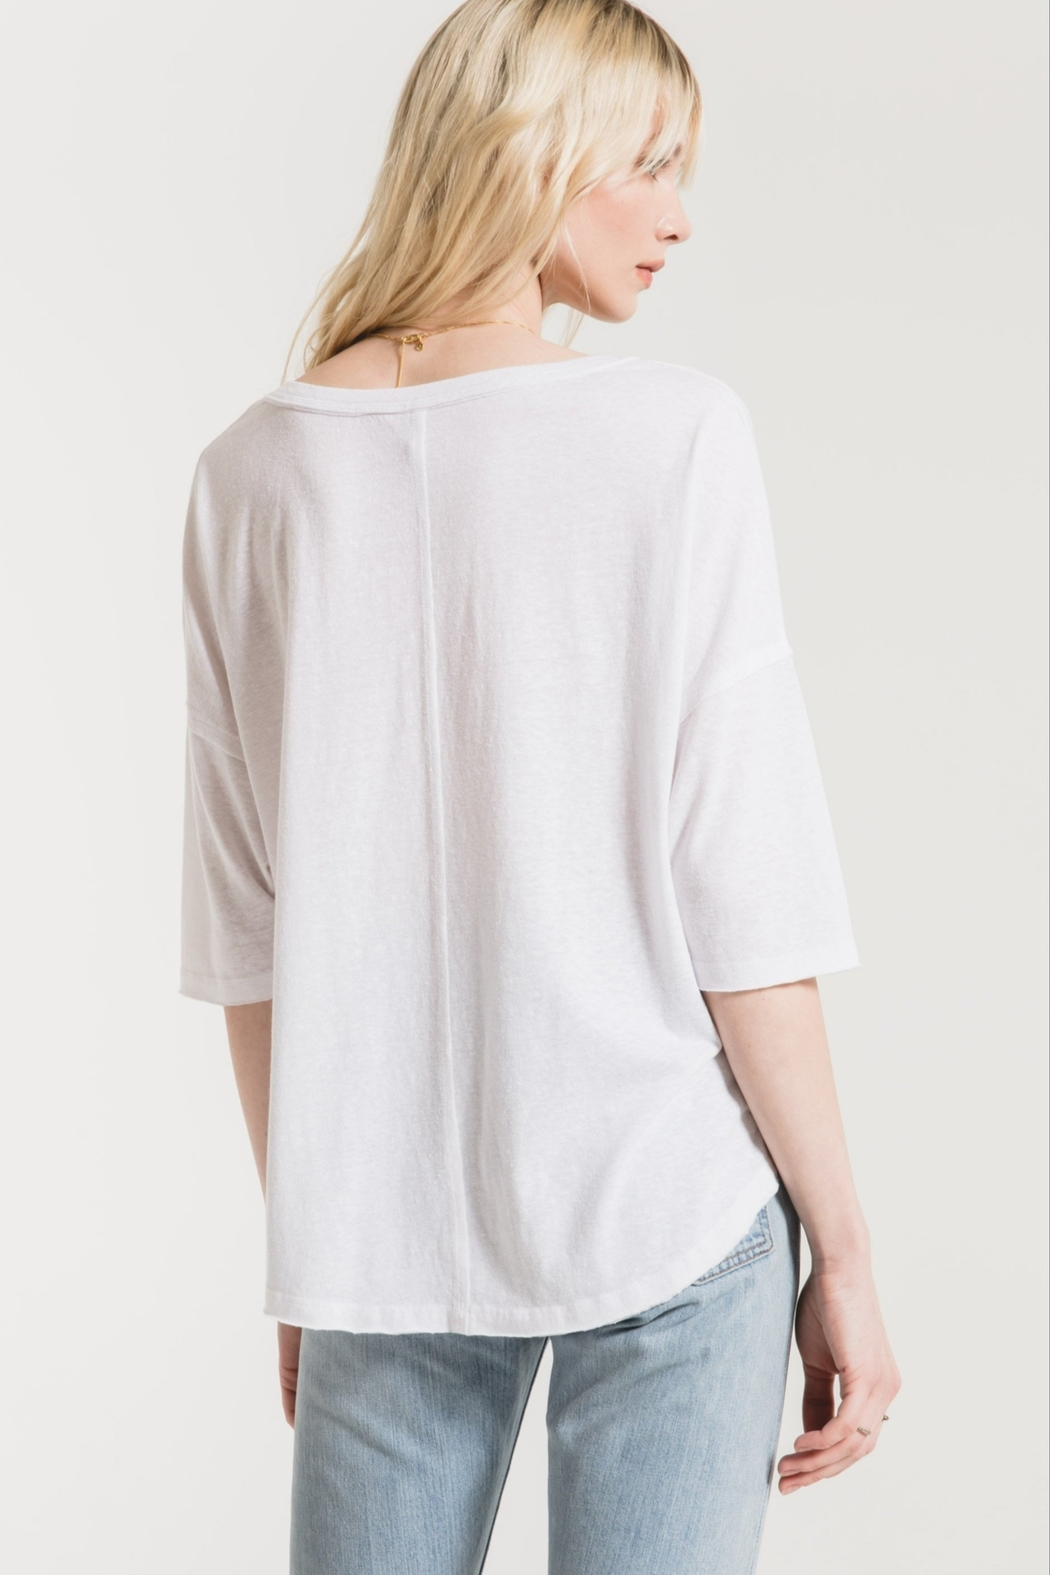 z supply The Triblend Sporty Tee - Side Cropped Image